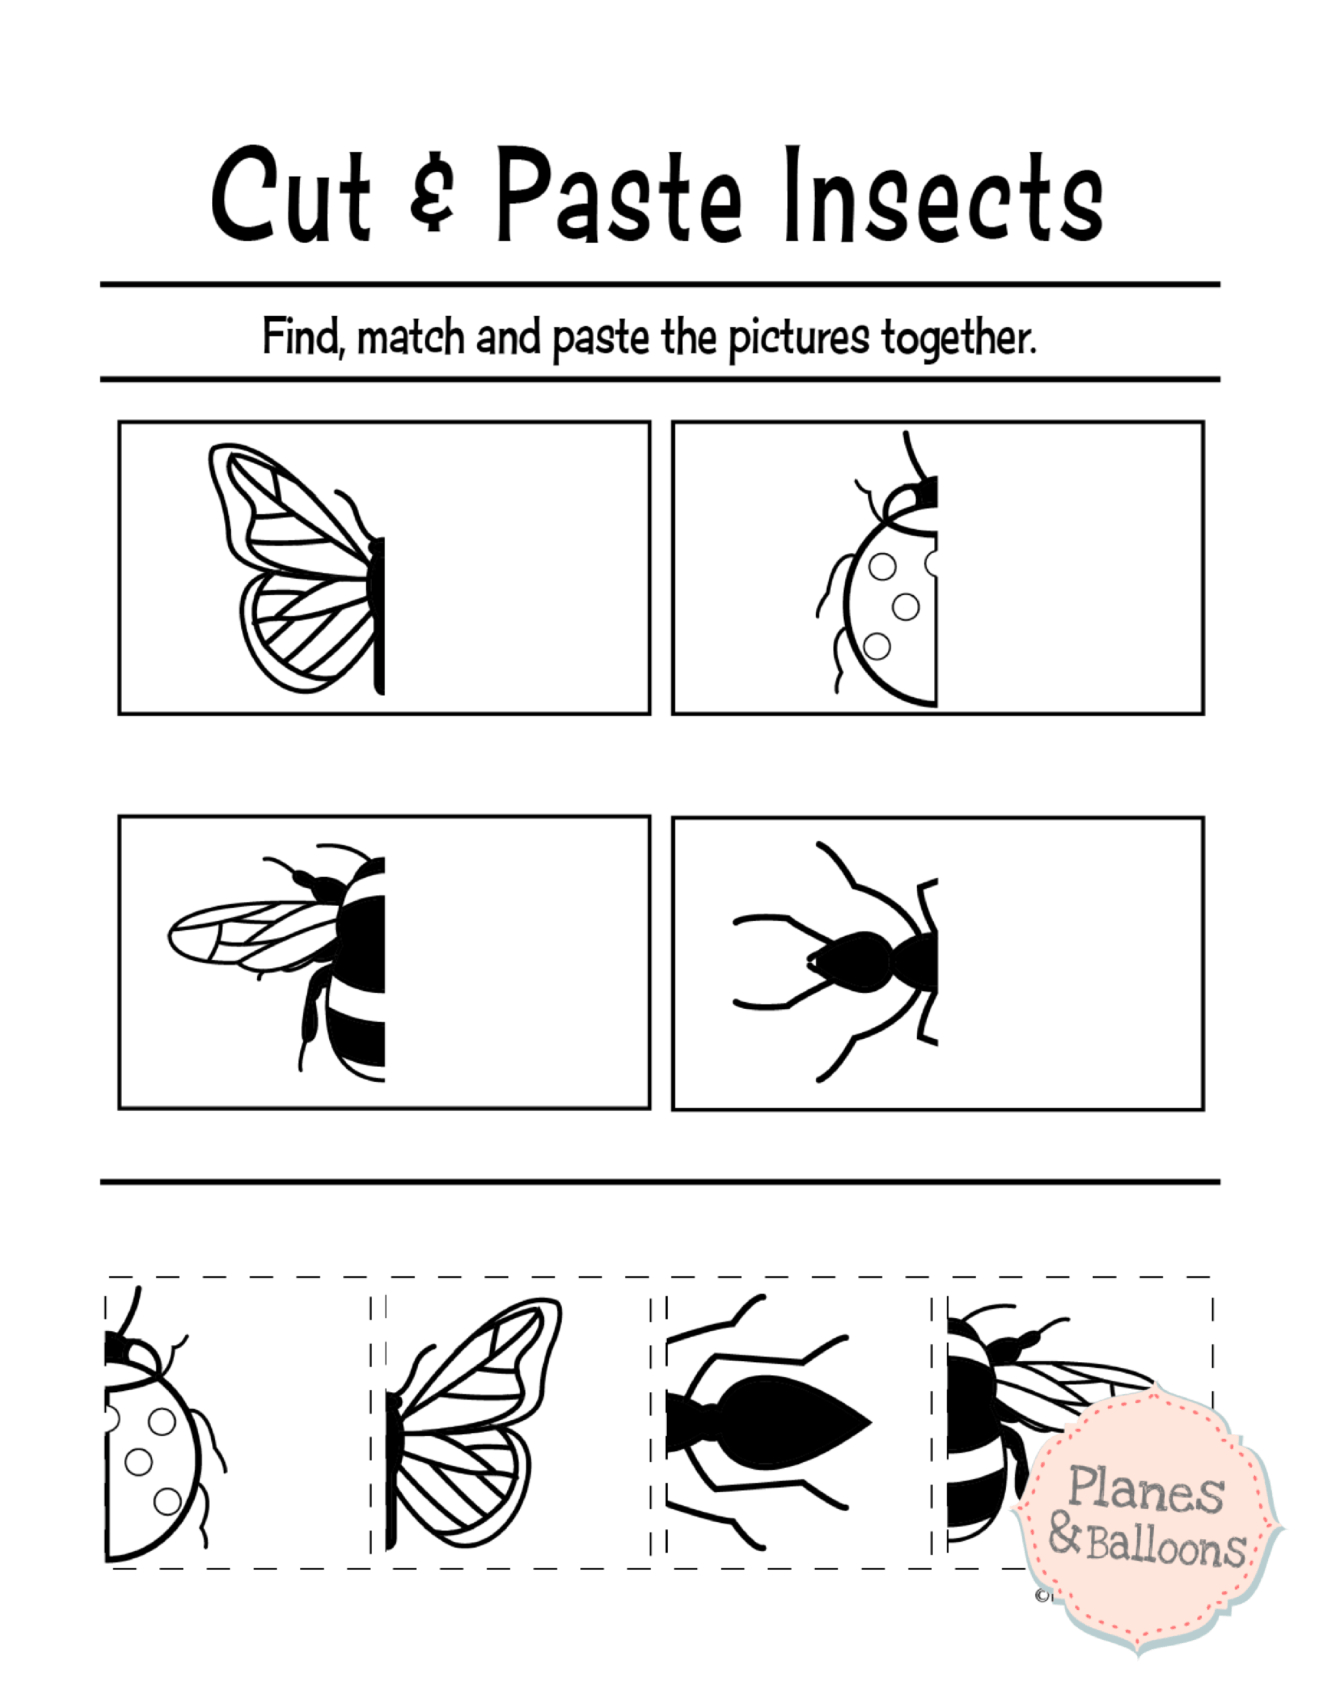 Free Printable Cut And Paste Worksheets For Preschool | Kidstuff - Free Printable Cut And Paste Worksheets For Preschoolers